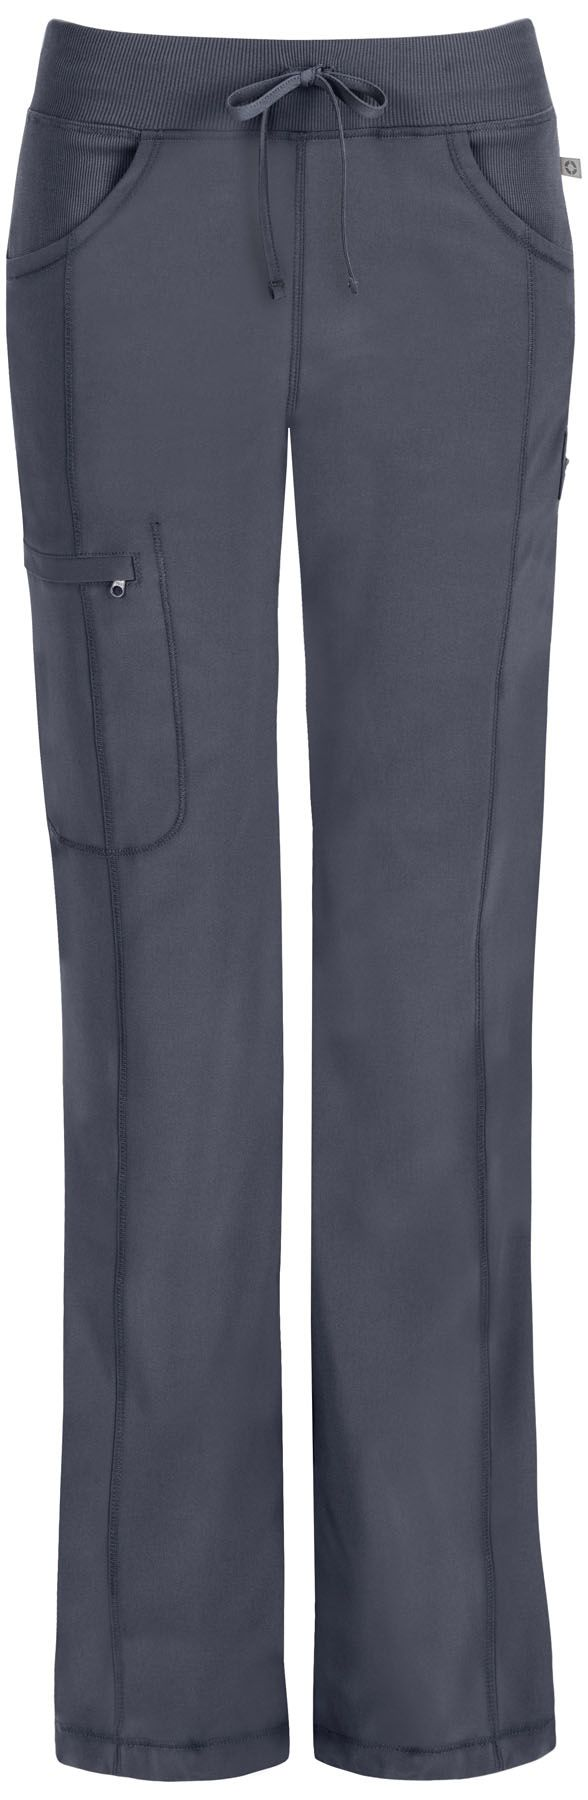 "A Contemporary fit, low rise, straight leg pant features an elastic knit waistband and adjustable drawstring. Also featured are rib knit front and back yokes, slash pockets, front leg seams with a zip closure cargo pocket, one back patch pocket, a bungee instrument loop below left pocket, a bungee cord with a toggle at the leg hems for adjustability and coverstitch detail throughout. Inseam: 31"" Sizes: XXS - 5XL Color: Pewter (PWPS) Antimicrobial technology"